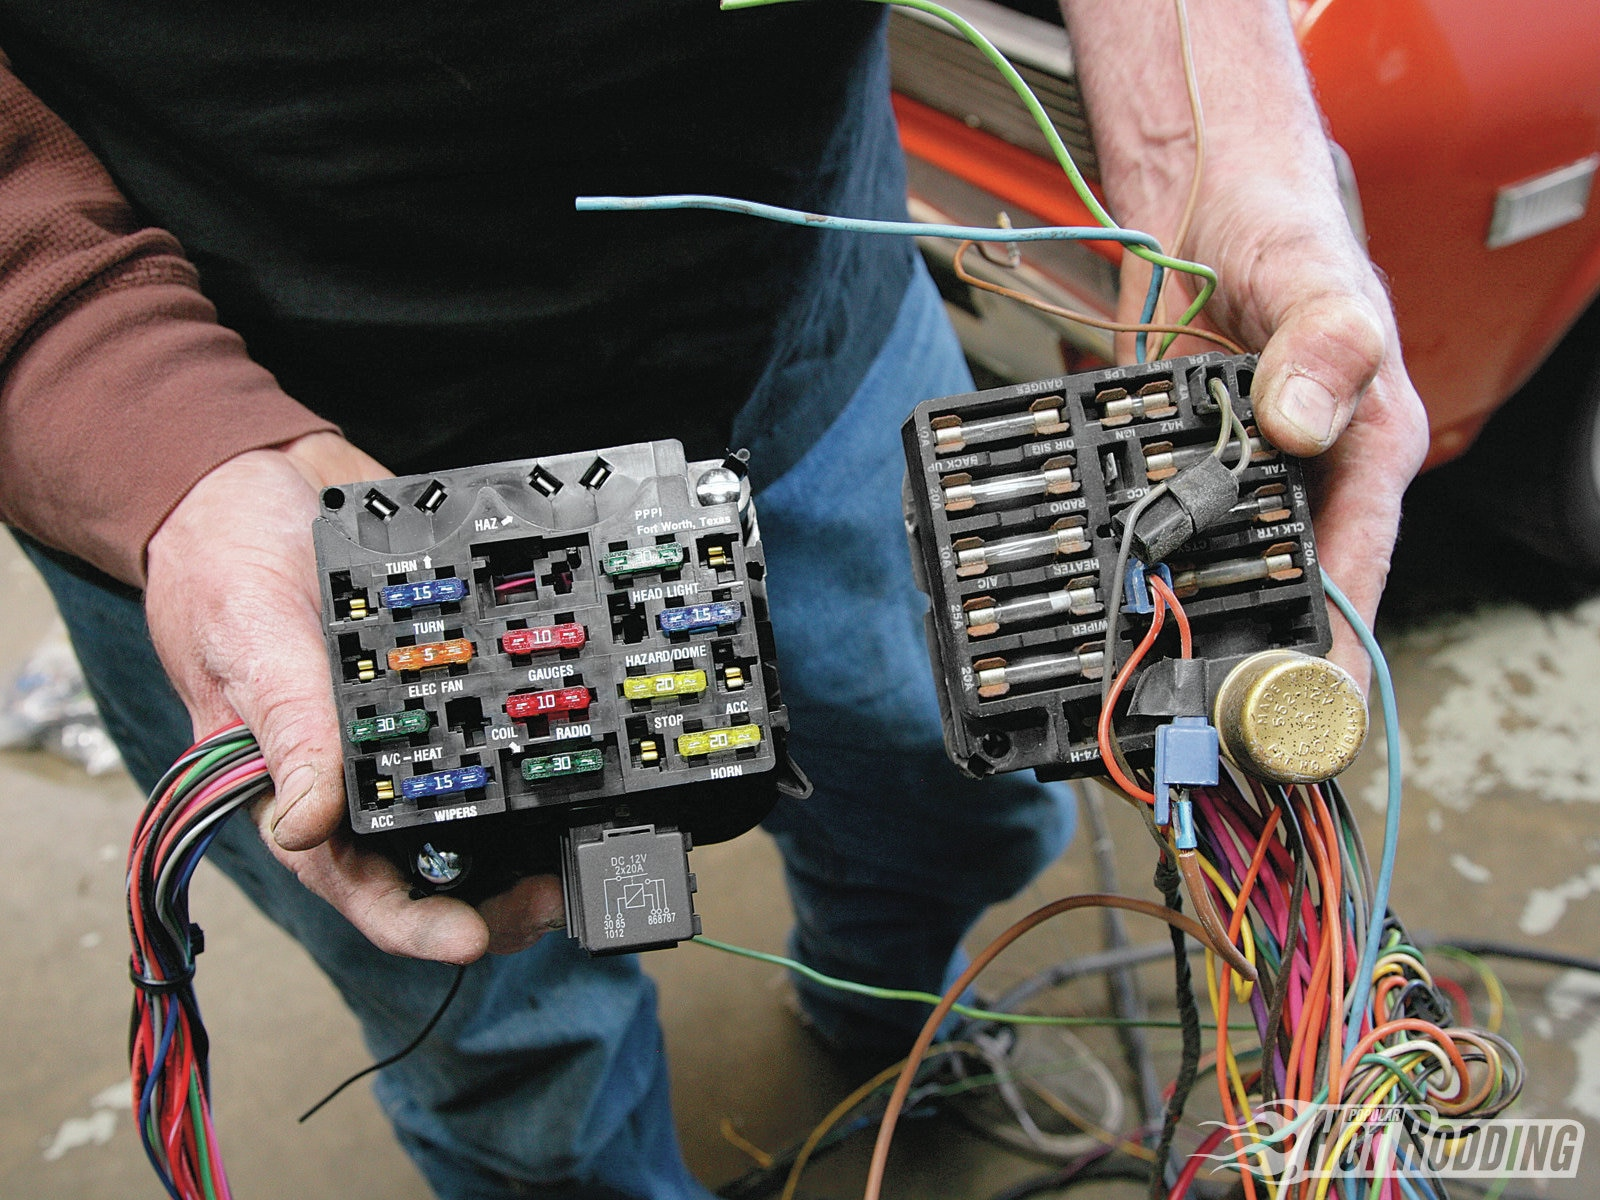 87 C10 Alternator Wiring Diagram New Painless Performance Wiring Harness For Project Nova